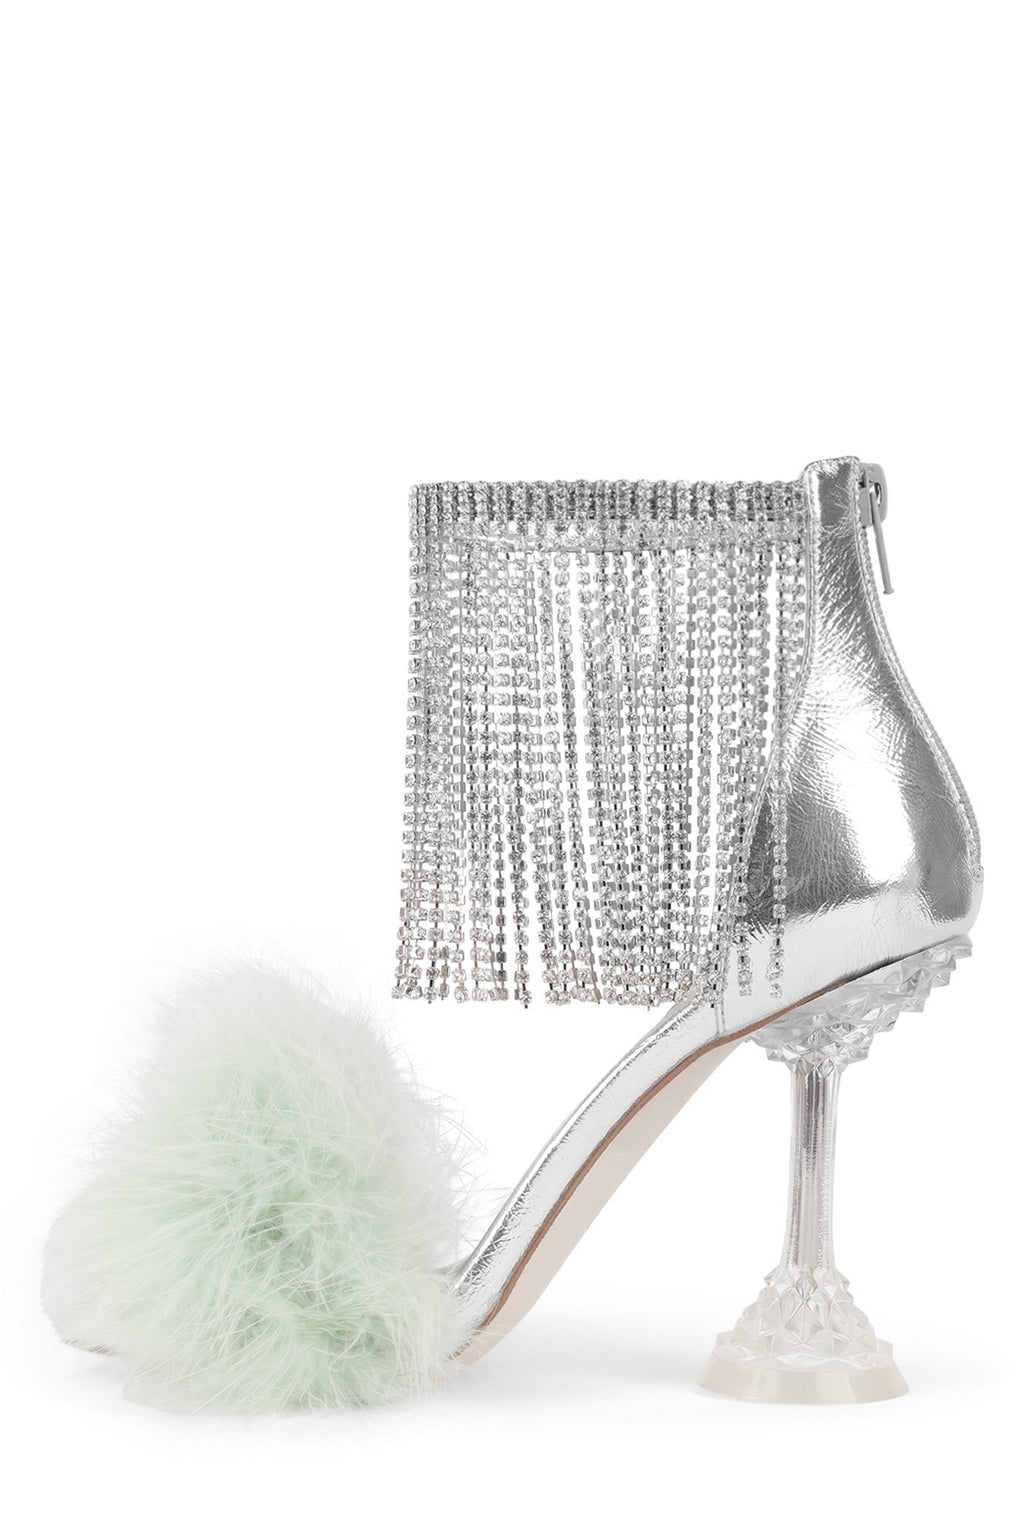 JAIMIE Heeled Sandal STRATEGY Mint Silver Clear 6